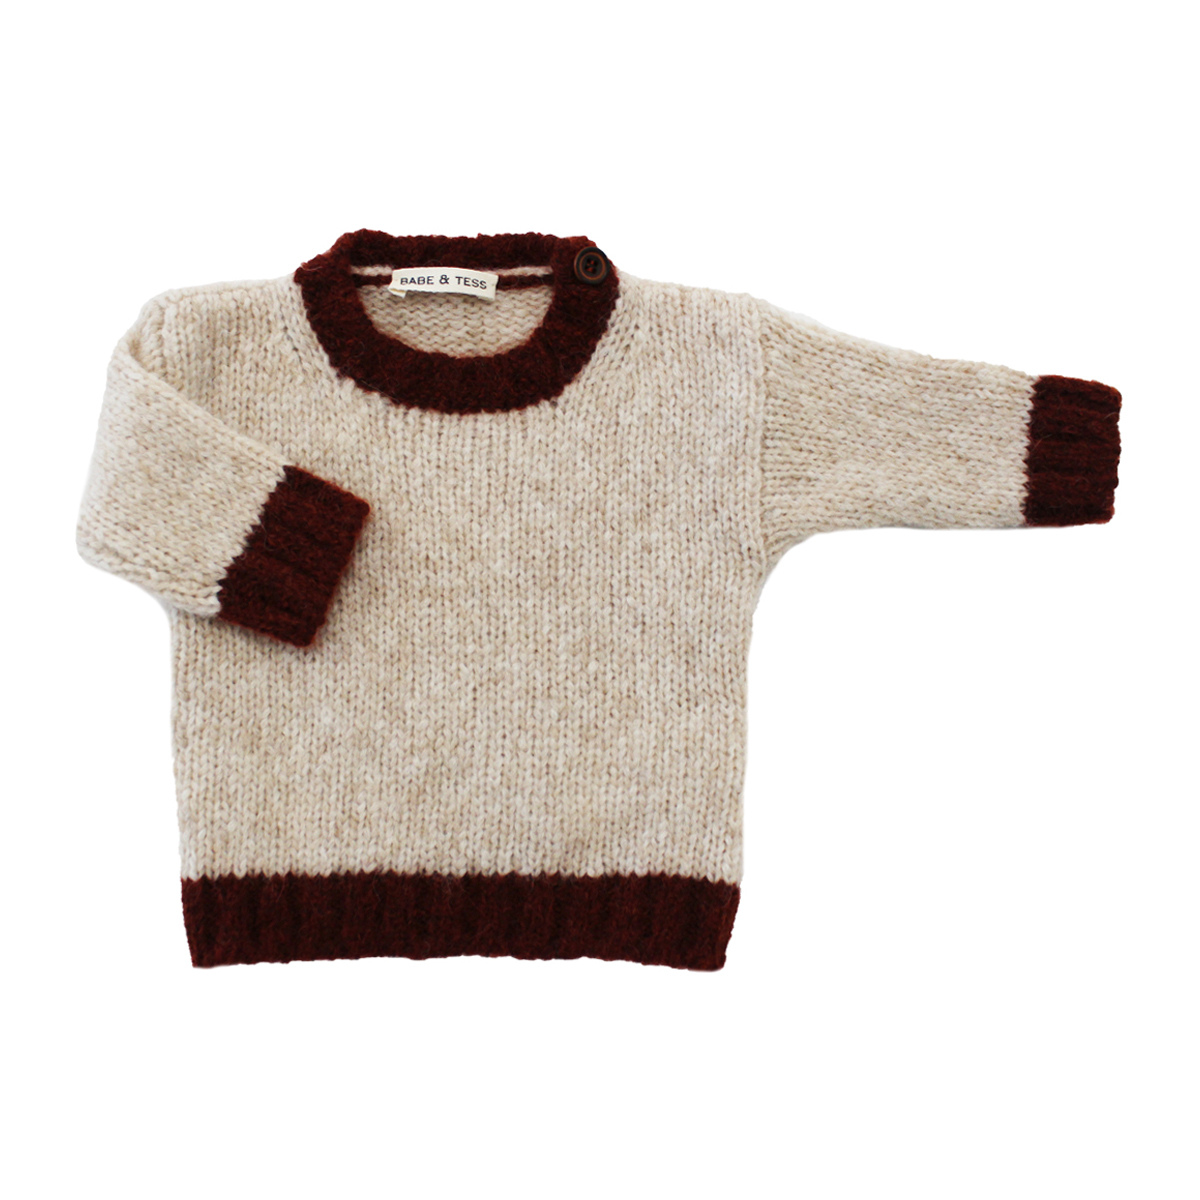 Babe & Tess Turtleneck Sweater in Natural & Maroon